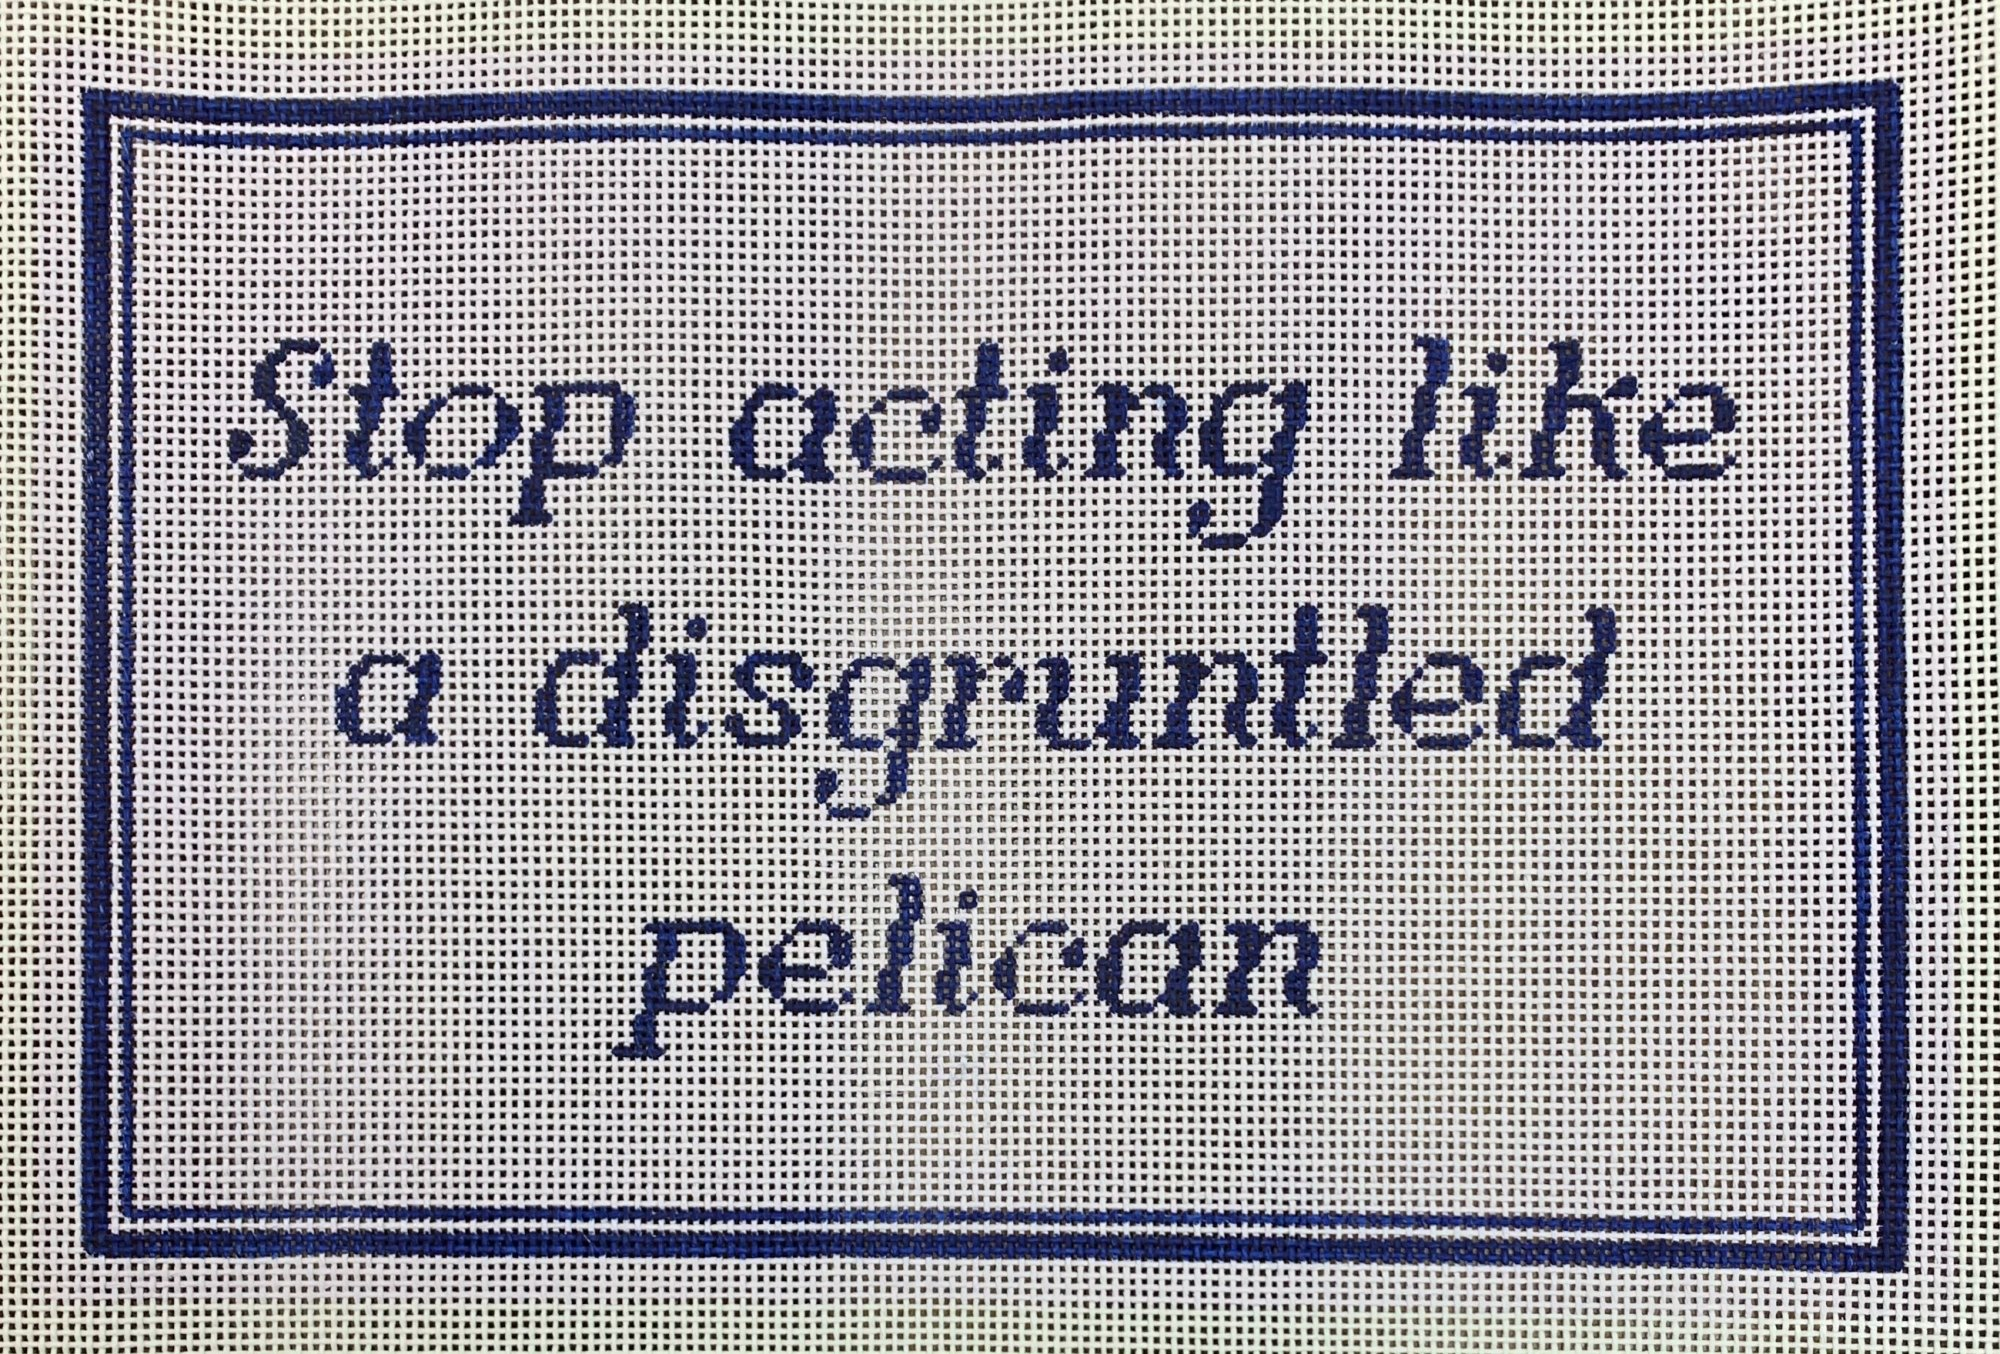 Disgruntled Pelican